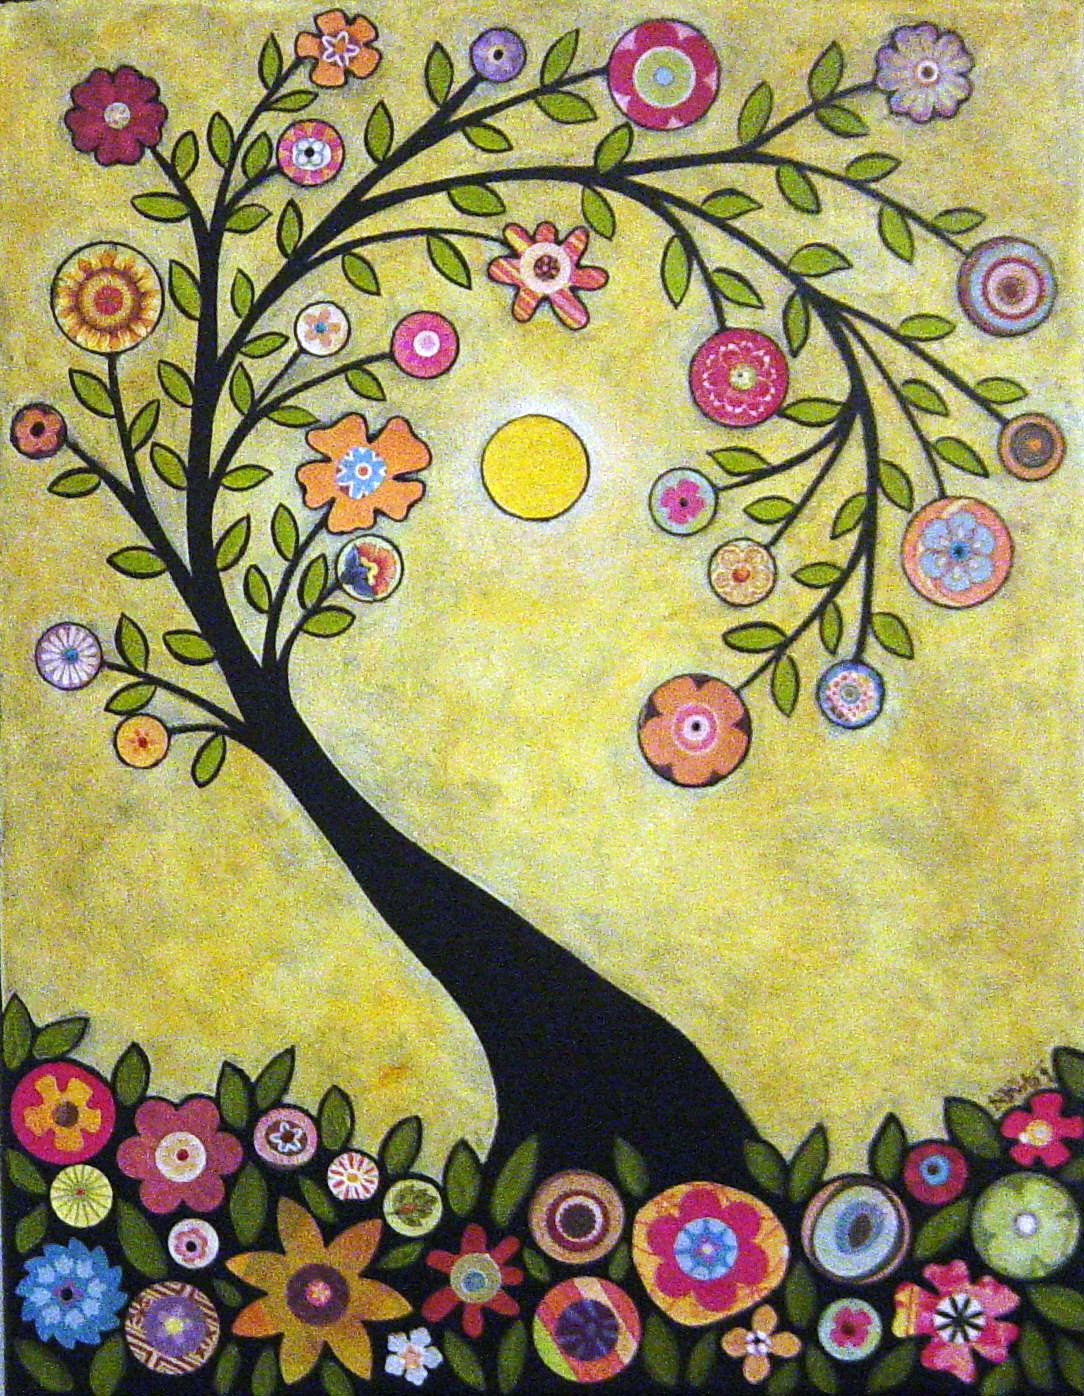 RUG HOOK Crafts PAPER PATTERN Collage Tree FOLK ART Abstract Primitive  KARLA G